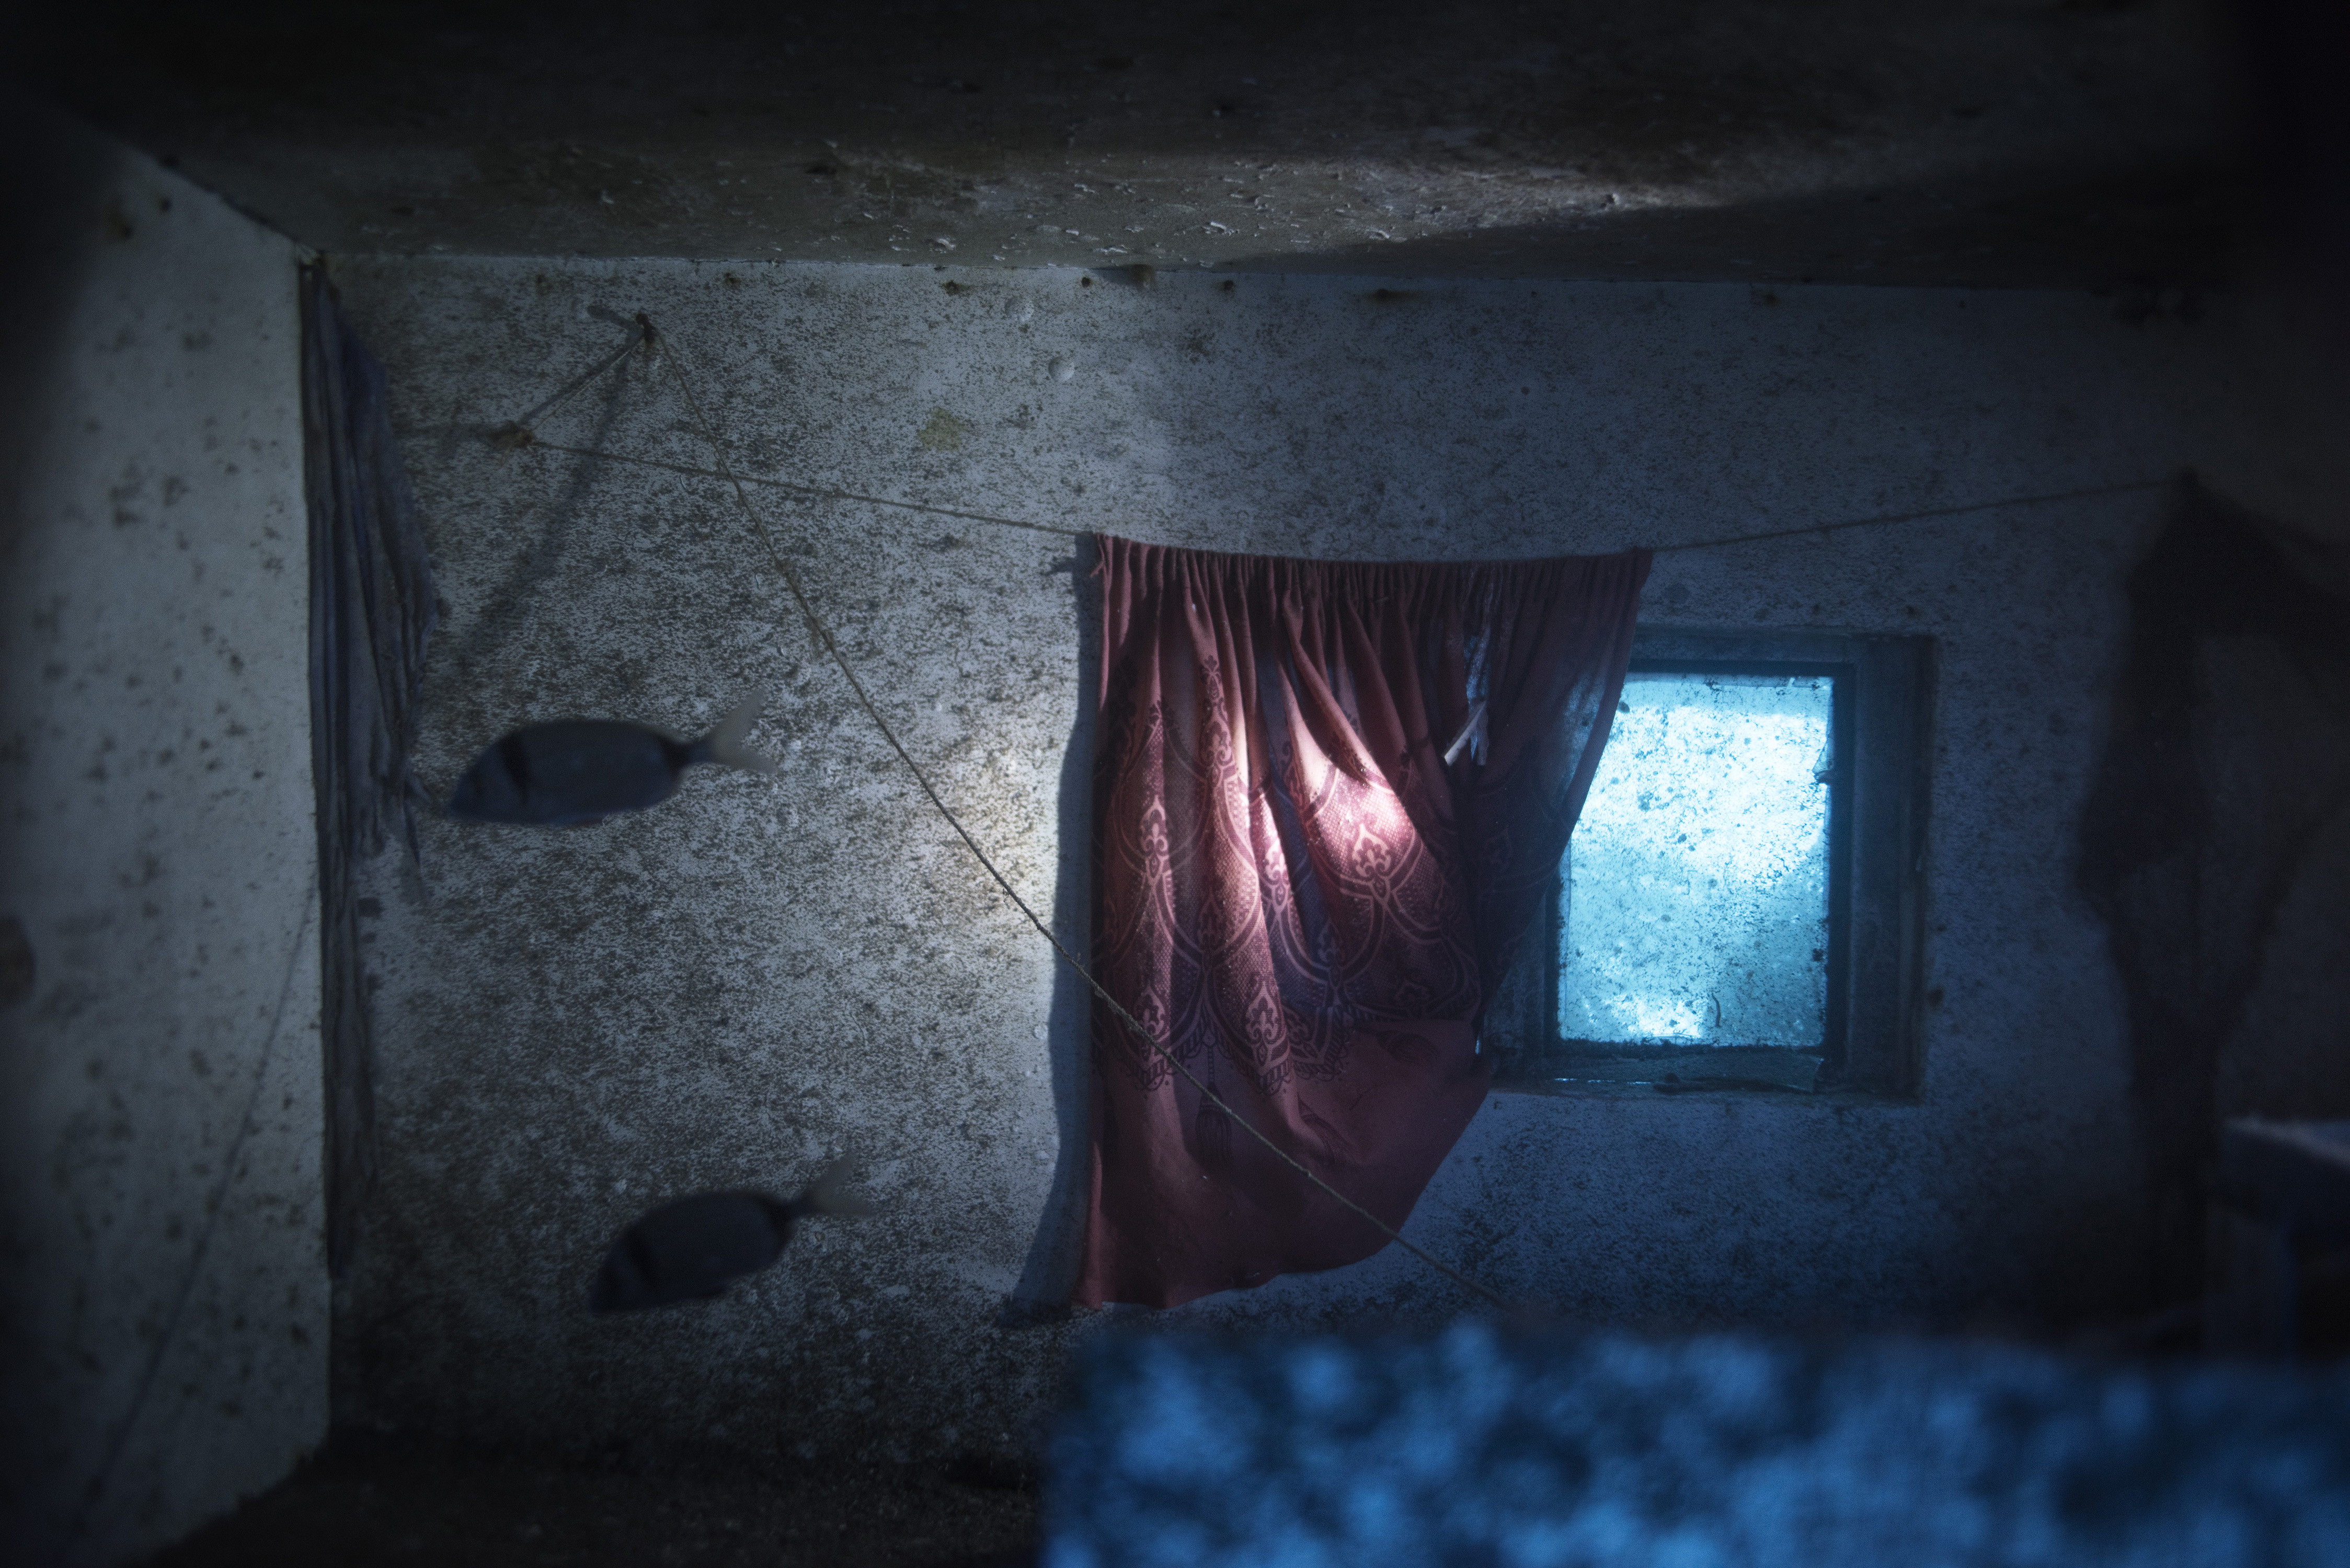 A cabin inside the 66-foot-long fishing boat that sank off the coast of the Italian island of Lampedusa lies at a depth of 164 ft. on the seabed, on Sept. 22, 2014. The tragedy that happened a year ago on Oct. 3, 2013 killed 366 migrants from North Africa.